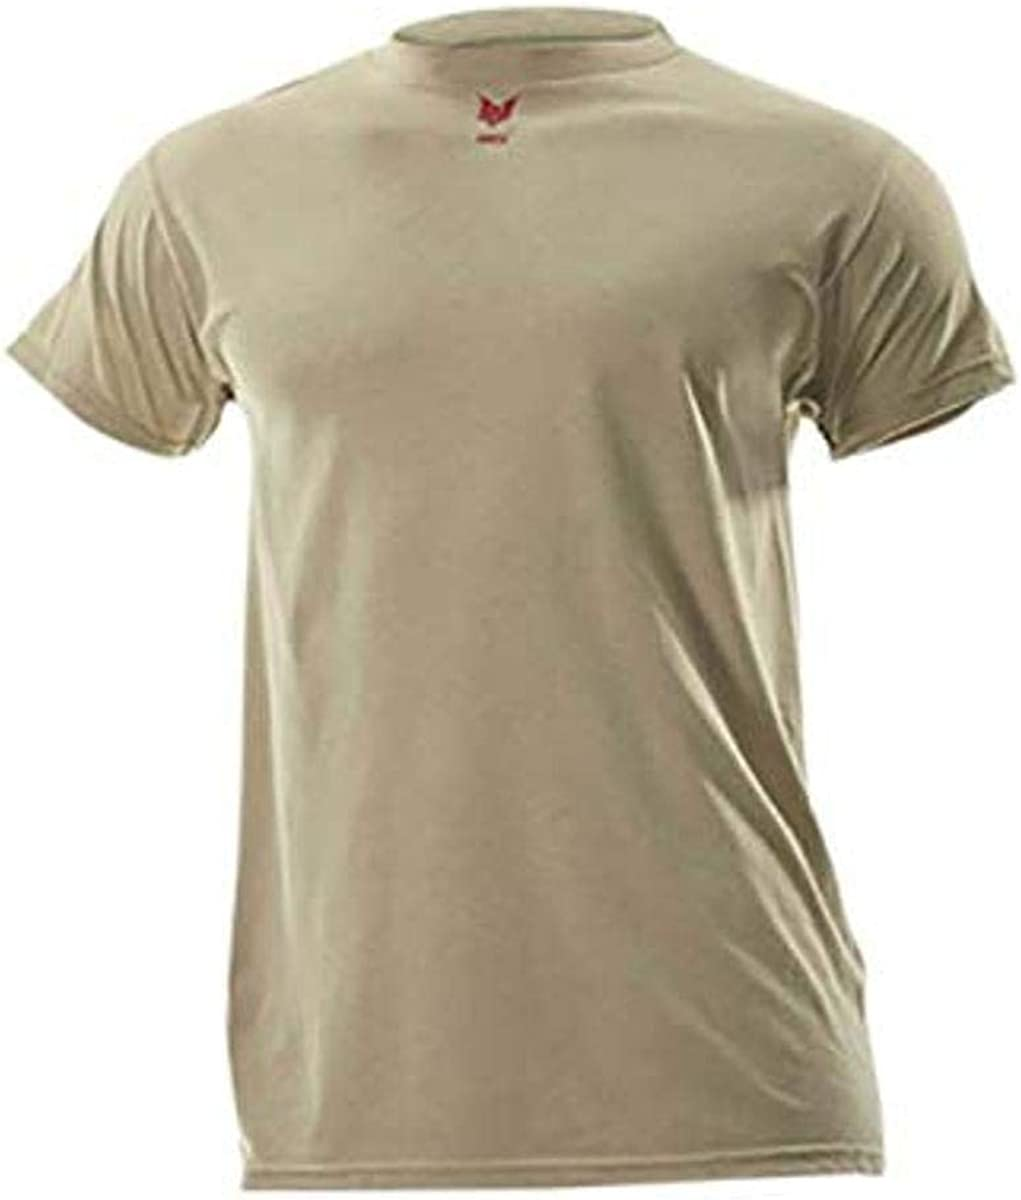 Rapid rise National Safety Max 69% OFF Apparel Lightweight DriFire